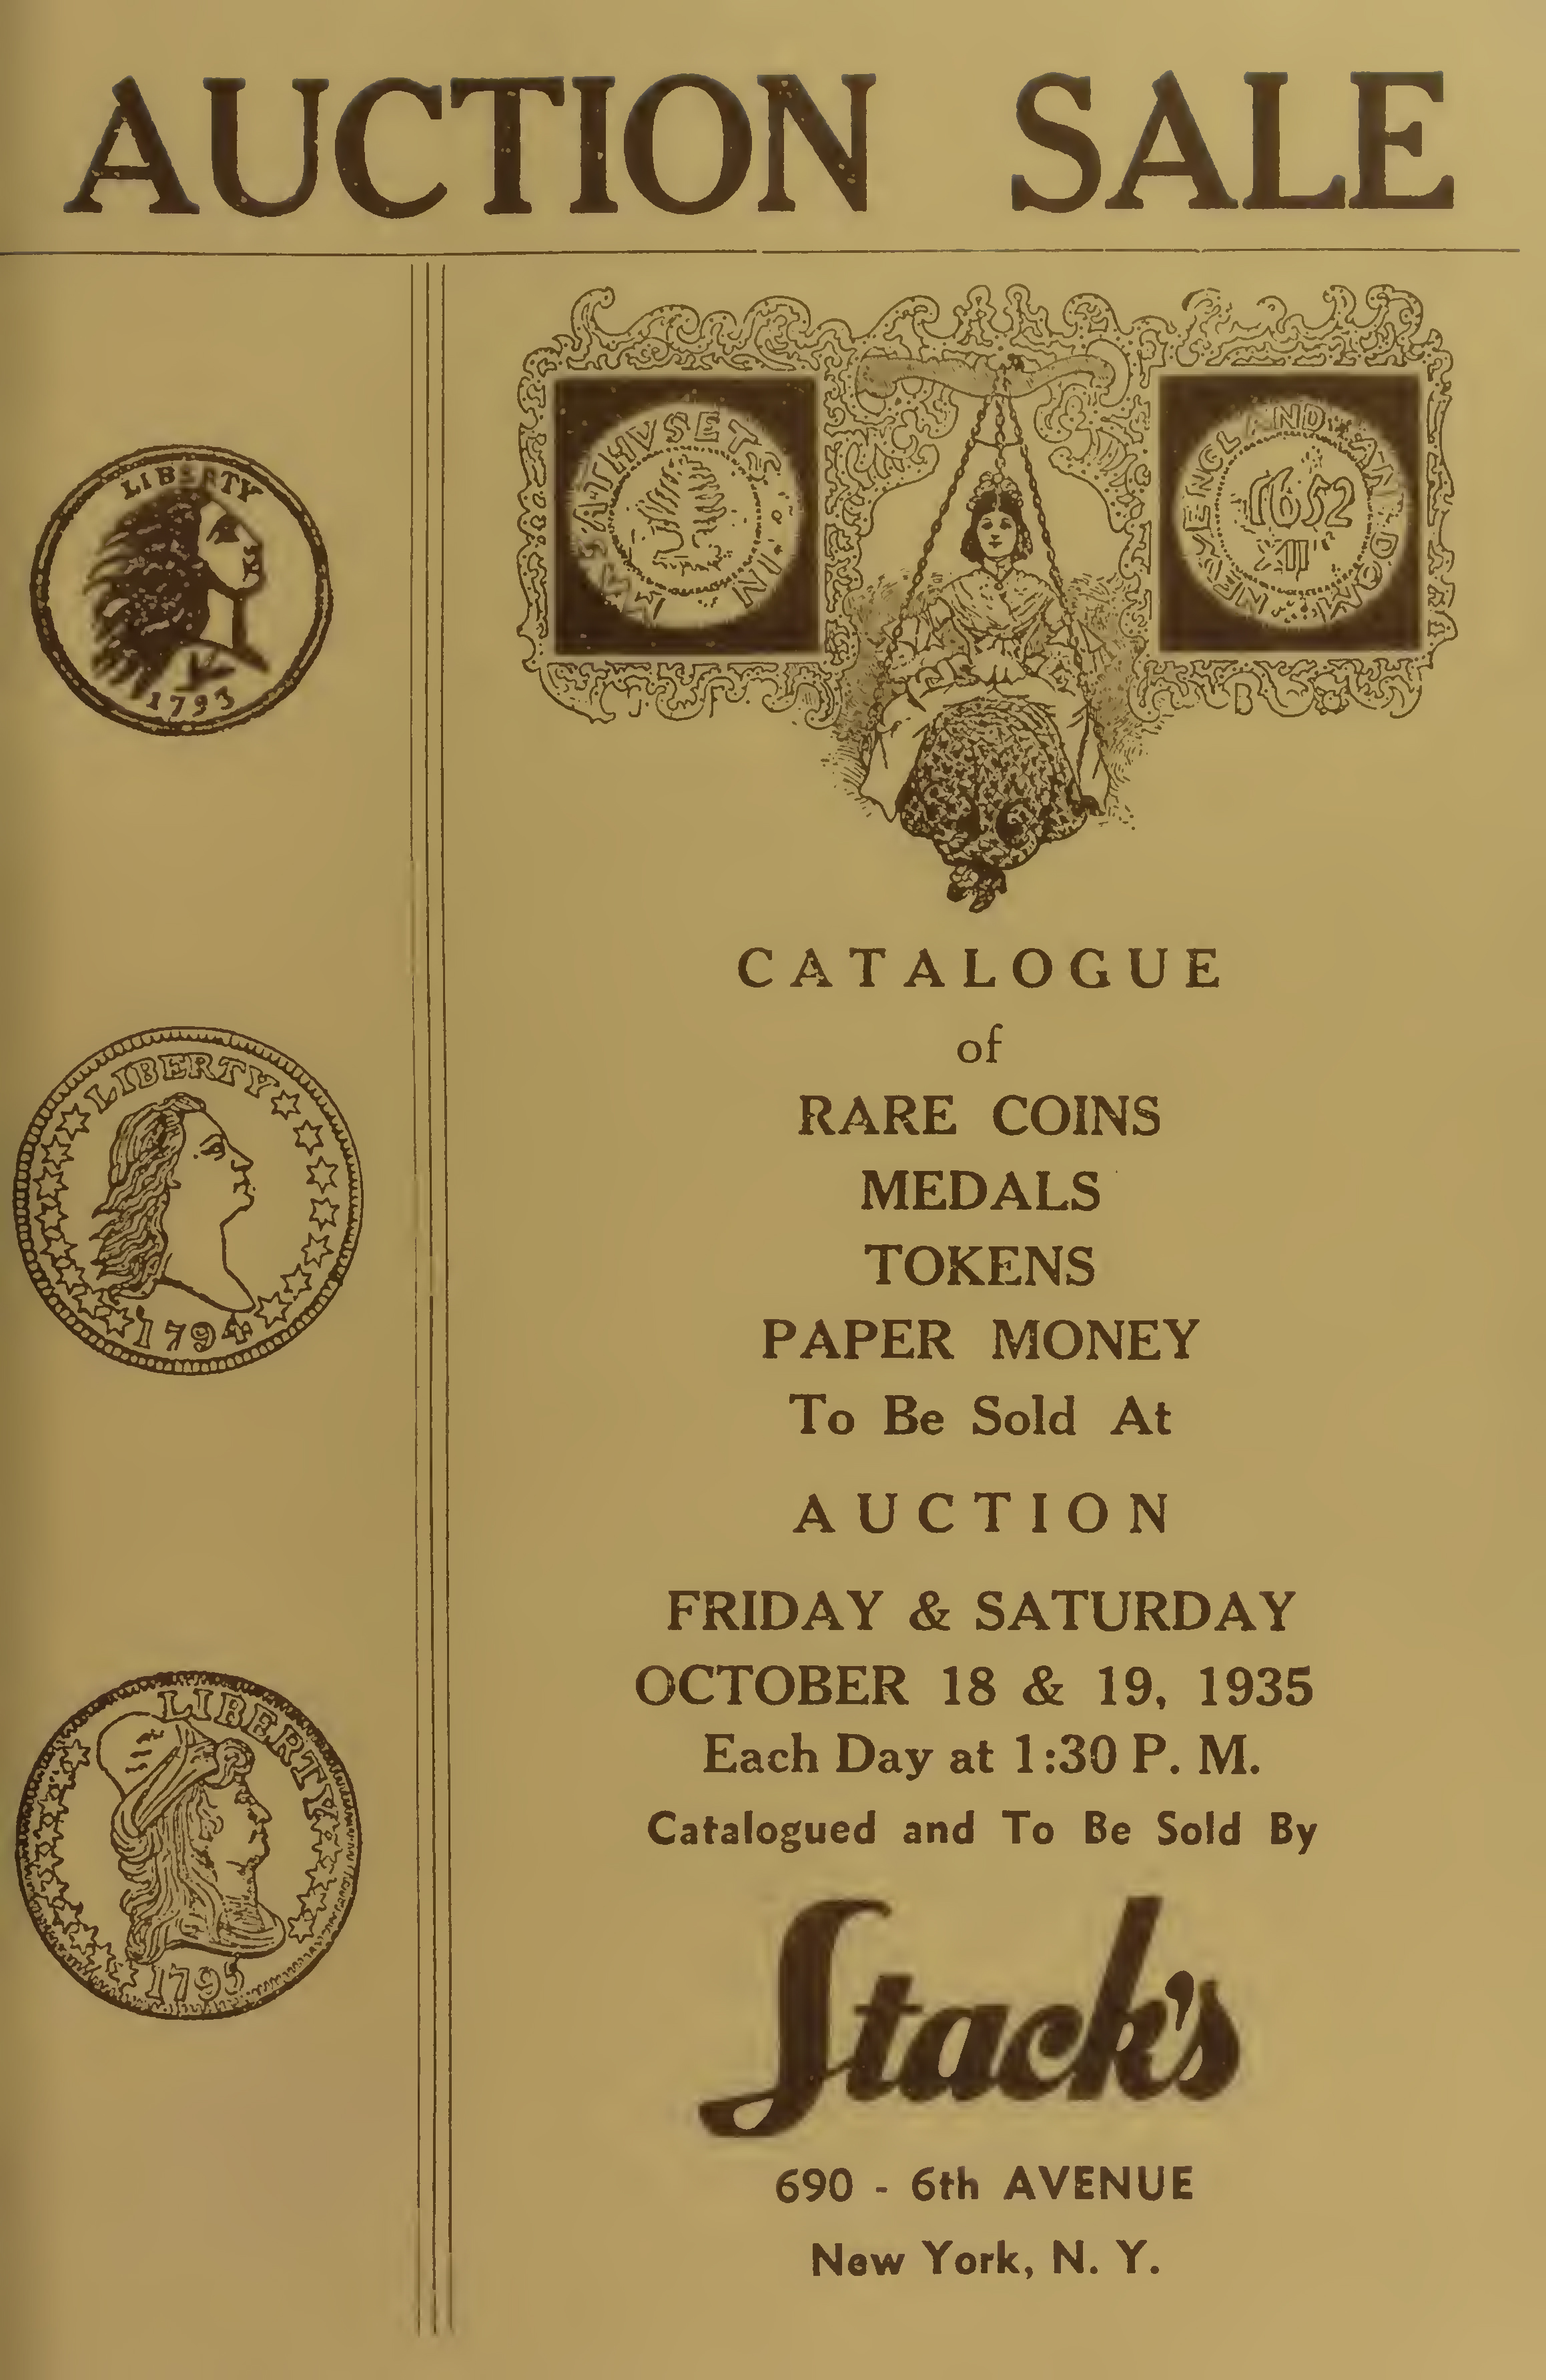 Catalogue of Rare Coins Medals Tokens Paper Money